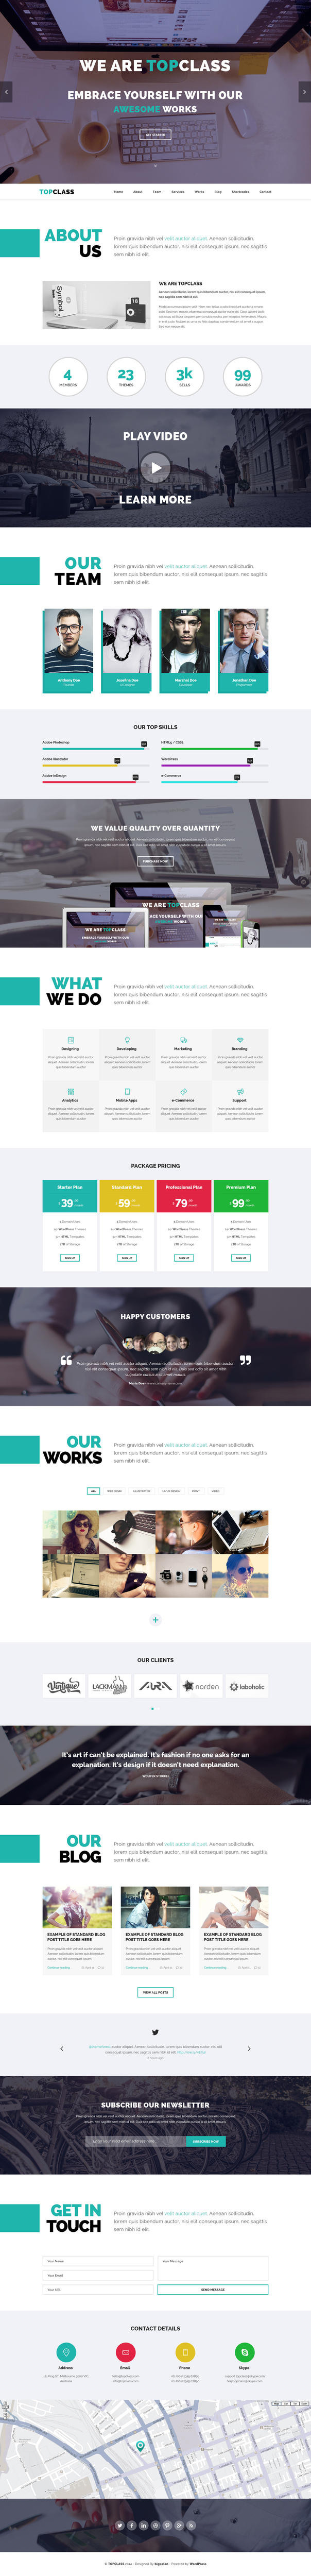 HTML5/WordPress/WooCommerce Theme Customization / Modification by Jewel_Theme - 106239